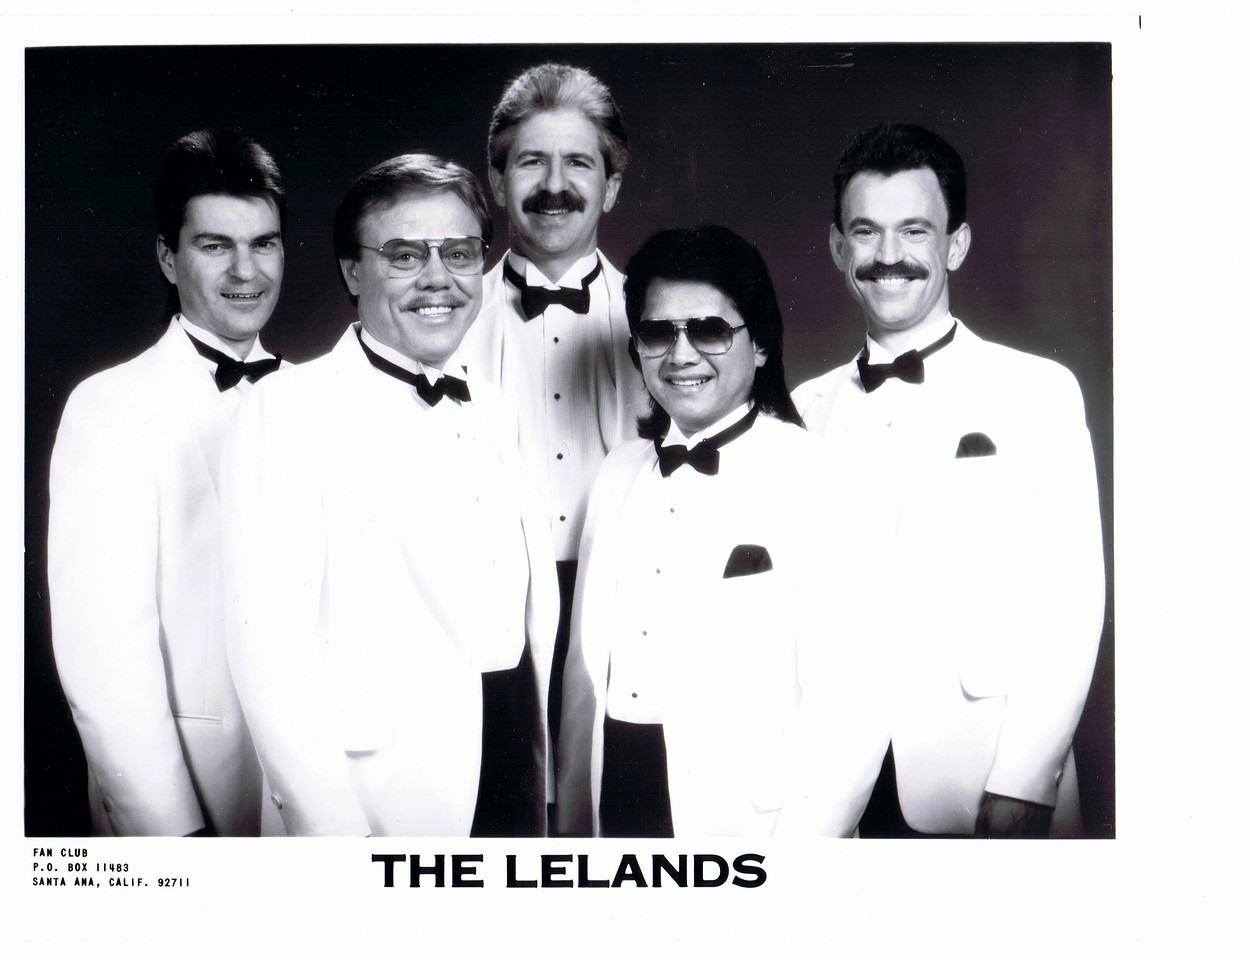 <font color=white><br> <br><font size=3><font color=red>band name<font color=white><br>The Lelands <font size=2> <br> <br><font size=2> <font color=red> who's in the picture<br> <font color=white>Jim Frank, Lee Henriksen, Dave Sturtz, Jet Kanani, Steve Rigney.<font color=red><br>